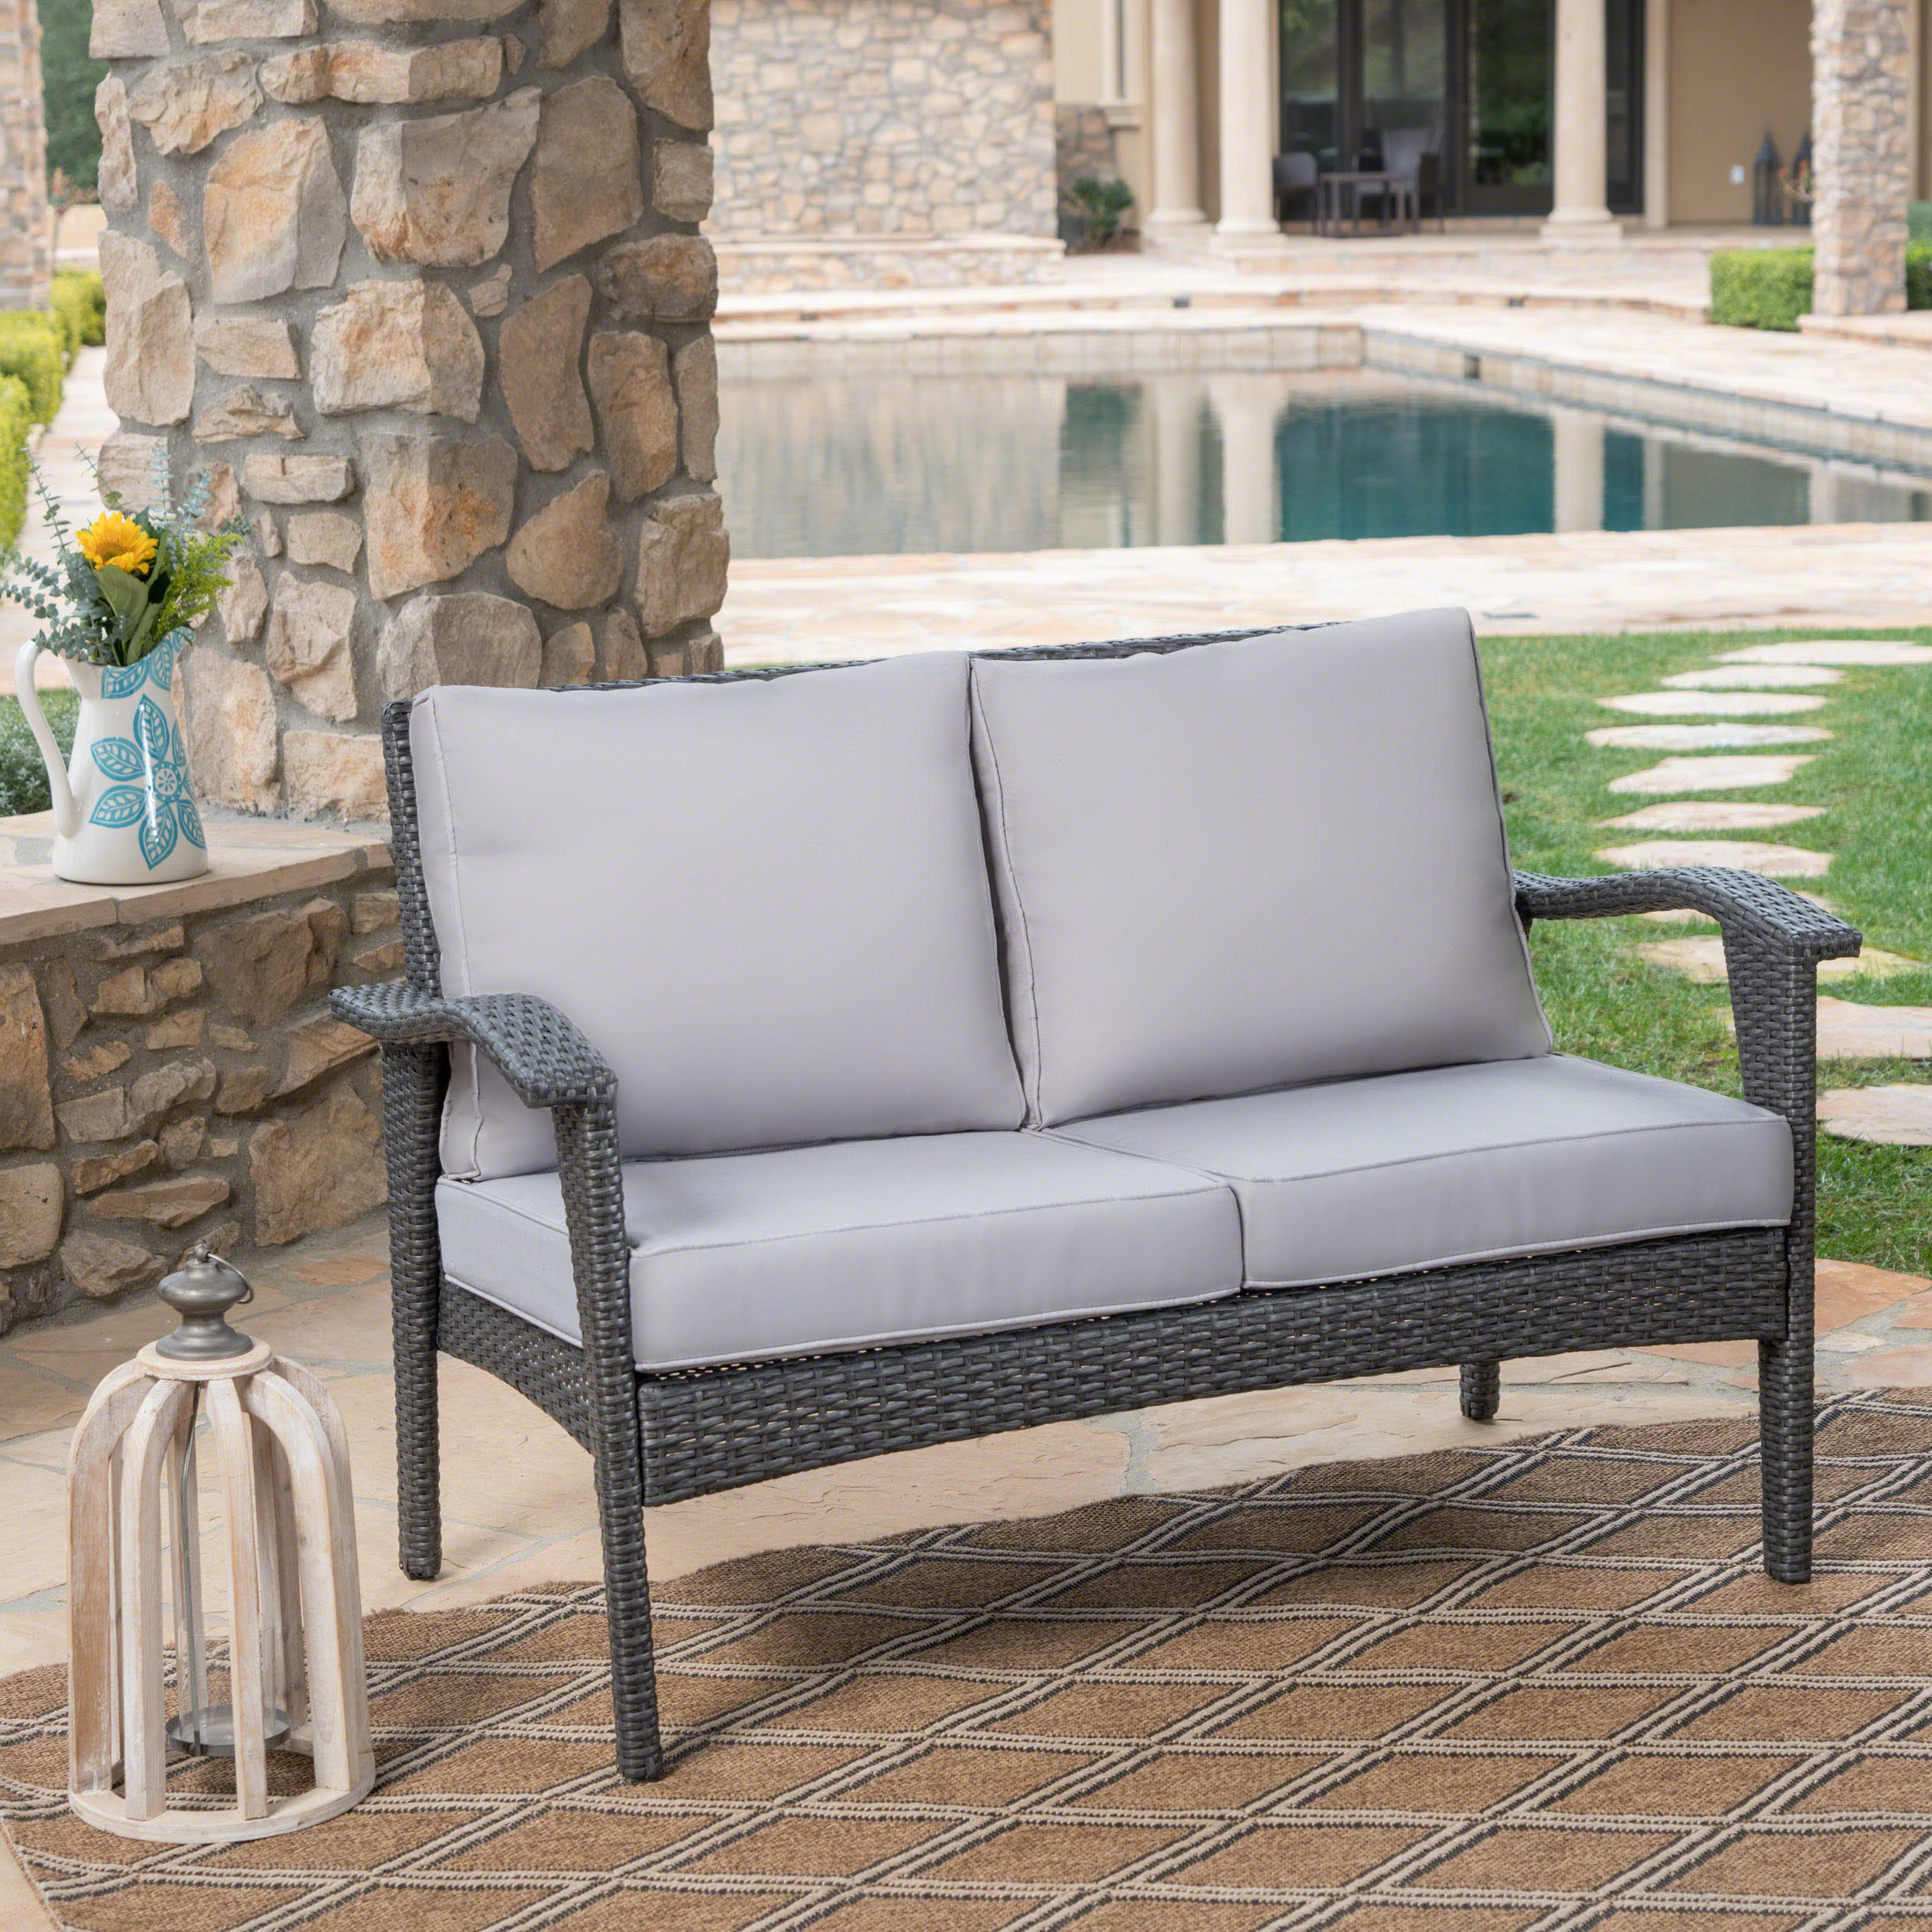 Hagler Outdoor Loveseat With Cushions For Newest Nadine Loveseats With Cushions (View 8 of 20)